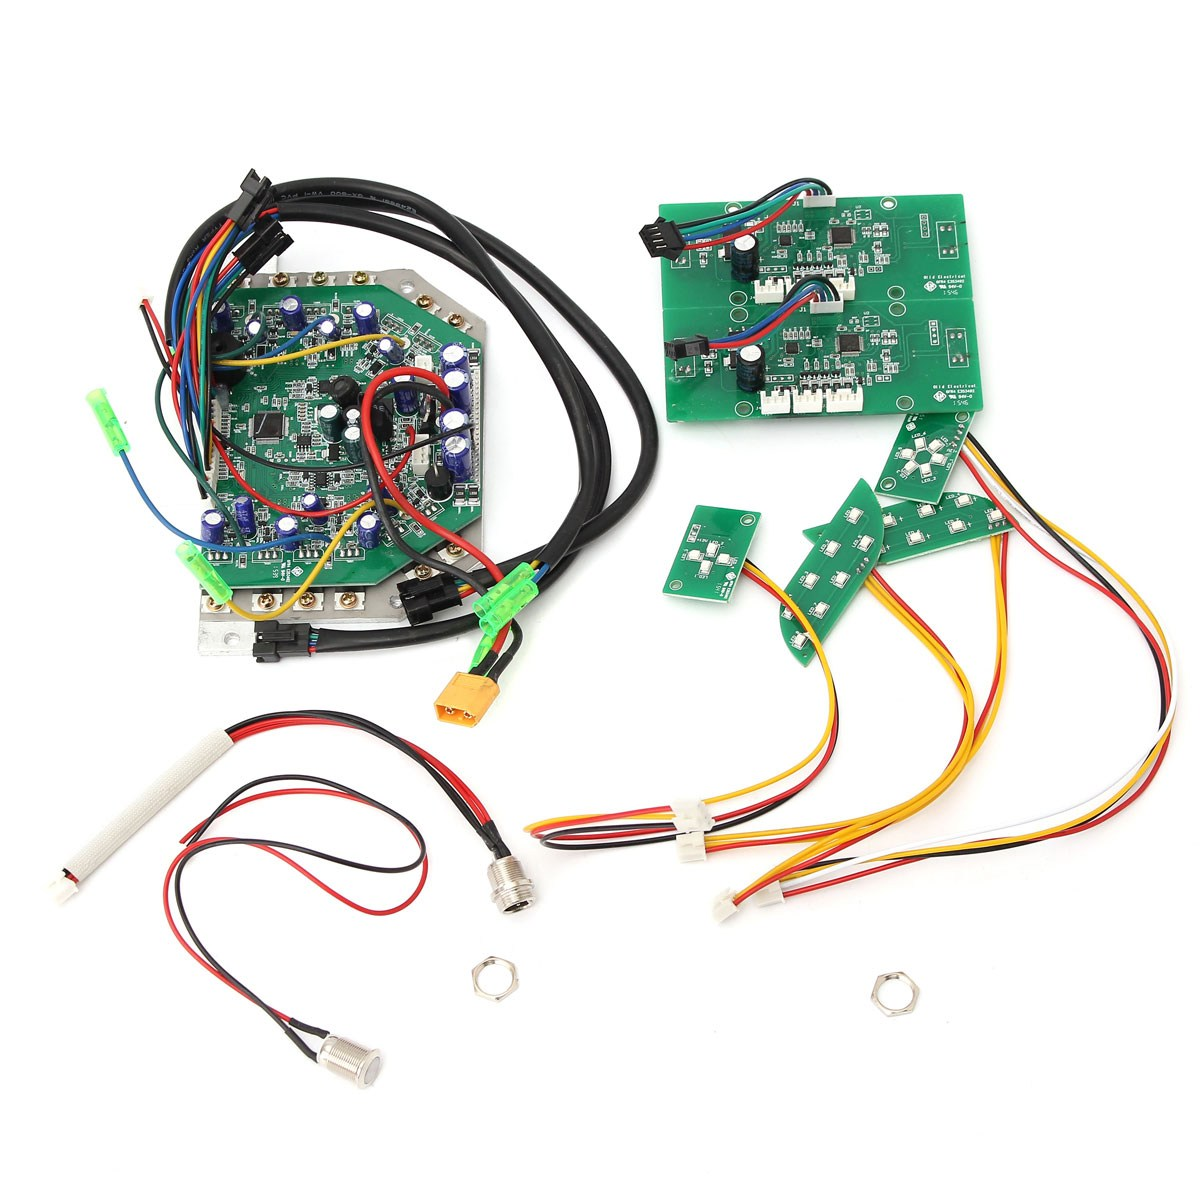 1Set Self Balance Scooter Control Board repair tool Replacement Controller Board For Self Balancing 2 wheels Electric Wheelers hoverboard electric scooter main control board gyroscope for oxboard 6 5 8 10 2 wheels self balance skateboard hover board pcba